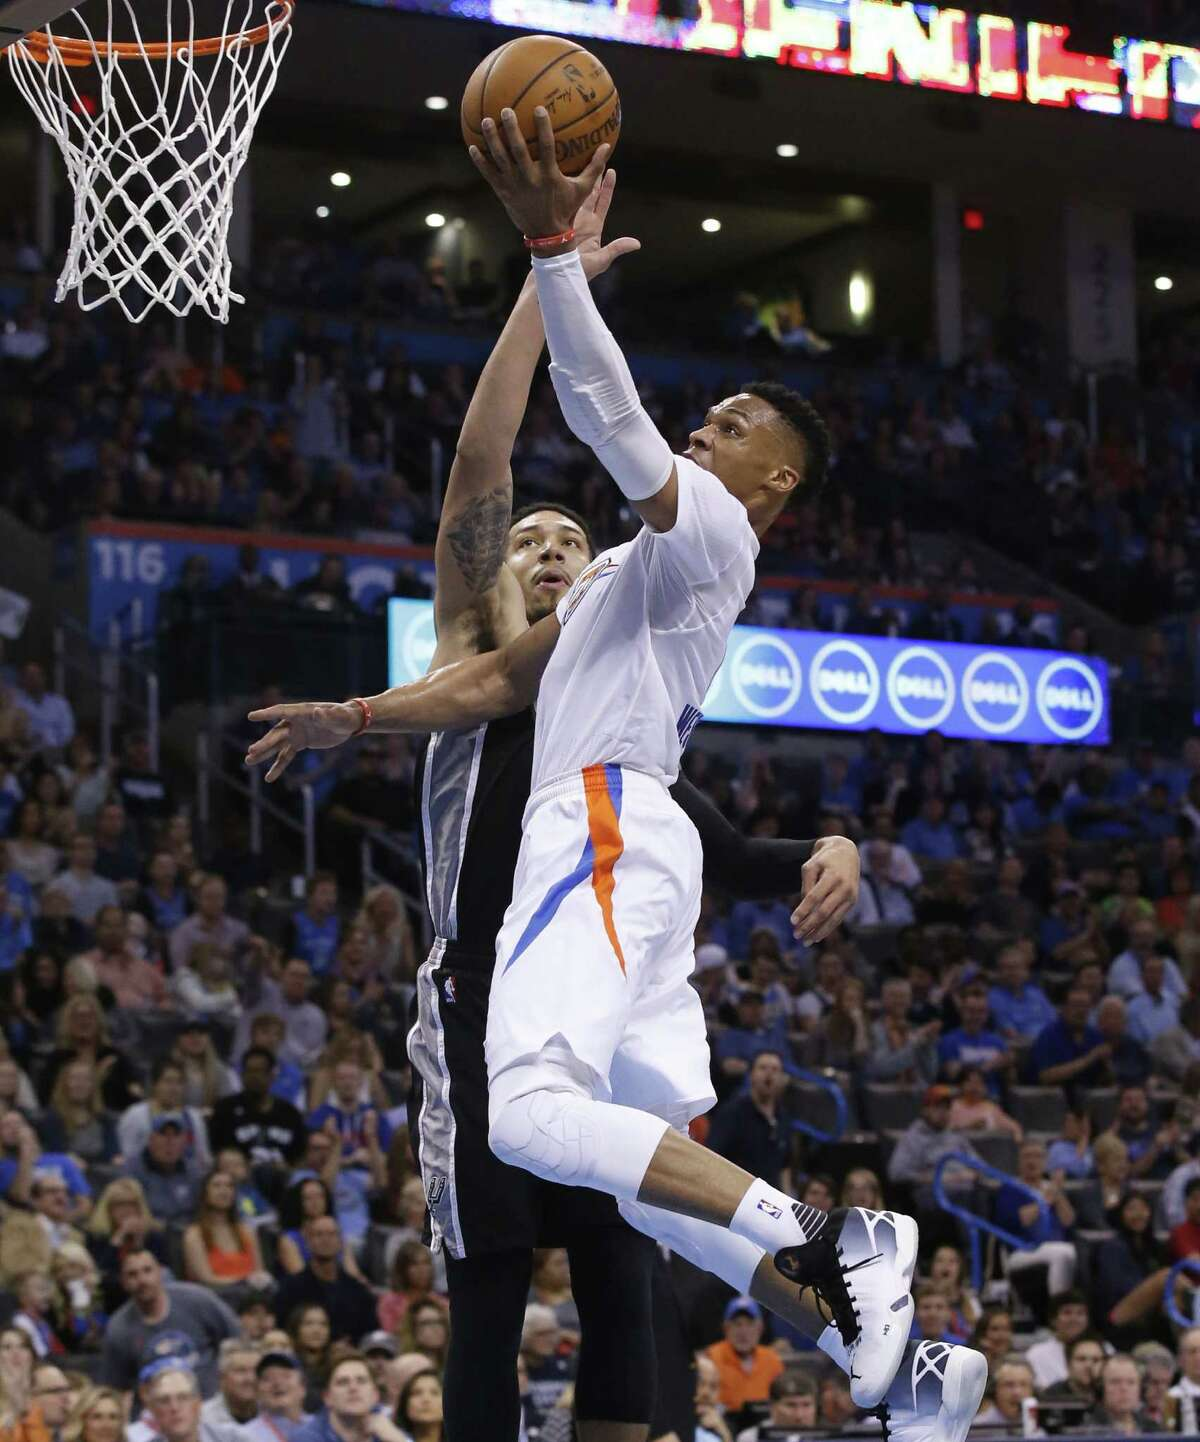 Oklahoma City Thunder guard Russell Westbrook, right, shoots in front of San Antonio Spurs guard Danny Green, left, in the second quarter of an NBA basketball game in Oklahoma City, Saturday, March 26, 2016. (AP Photo/Sue Ogrocki)